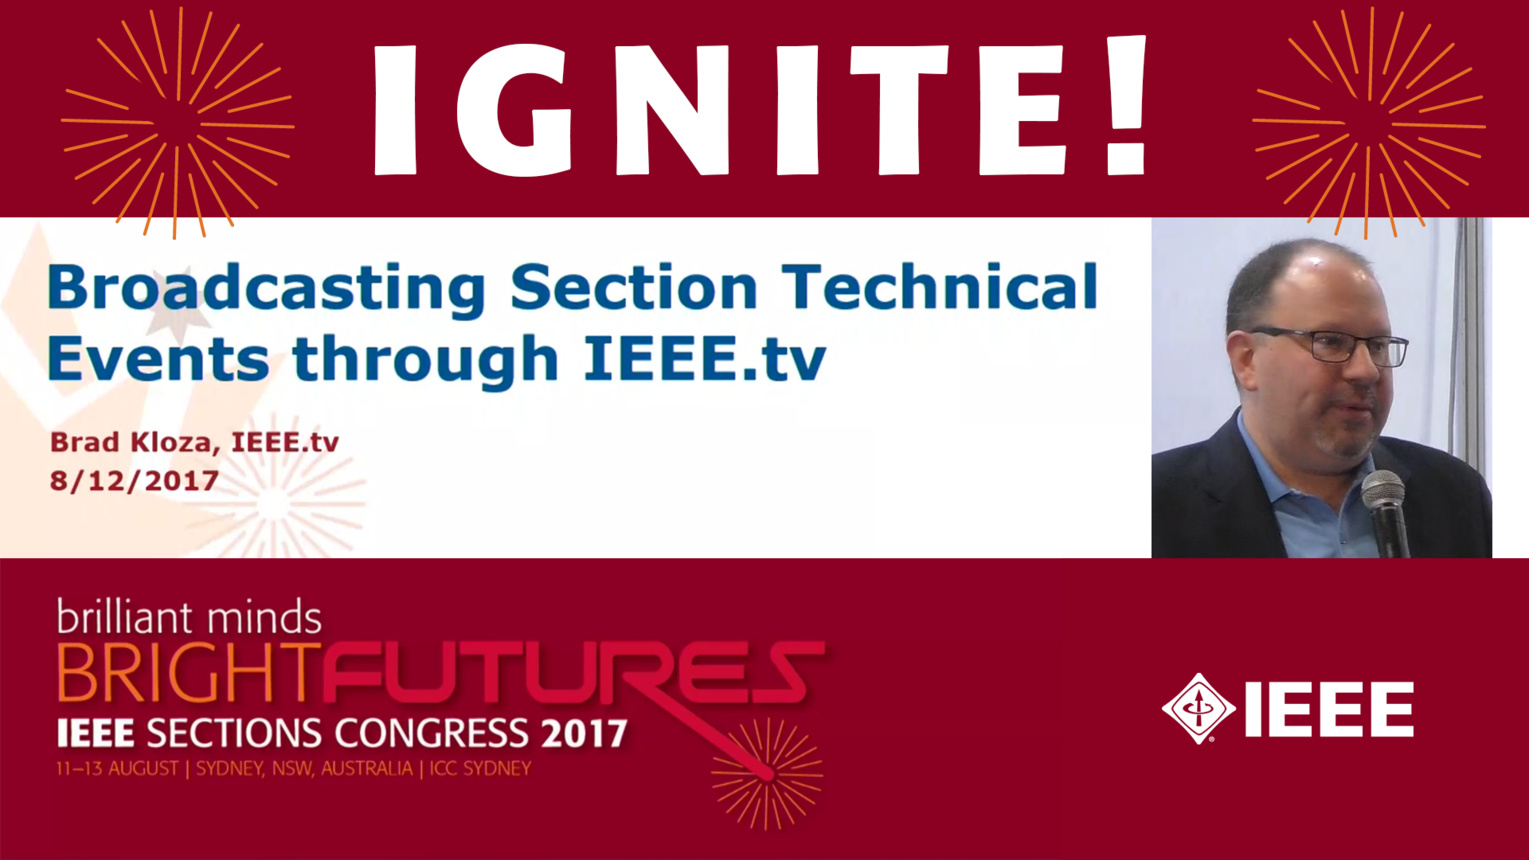 Broadcasting Section Technical Events Through IEEE.tv - Brad Kloza - Ignite: Sections Congress 2017